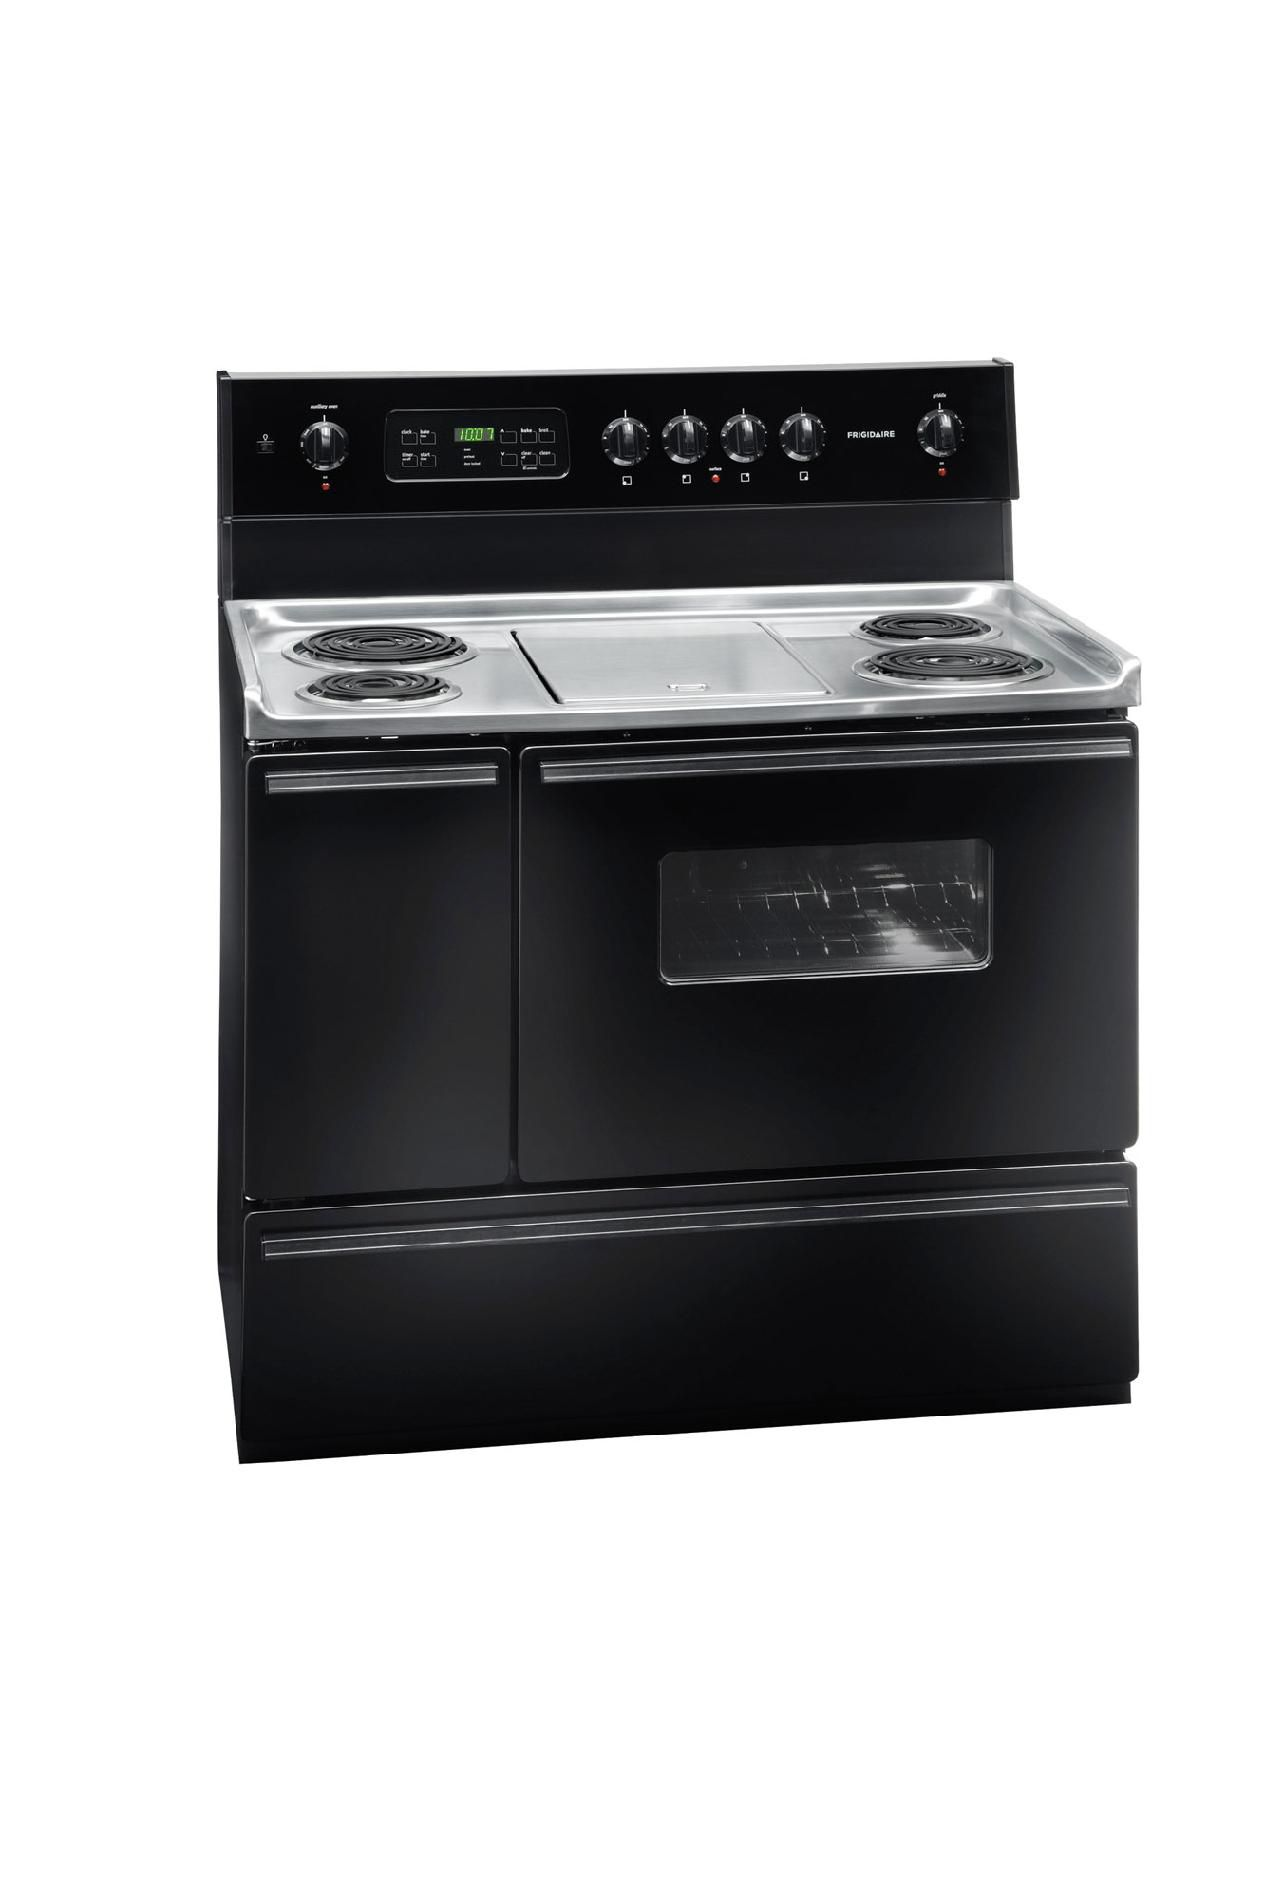 "Frigidaire 5.4 cu. ft. 40"" Self-Clean Electric Range w/ Coil Elements"